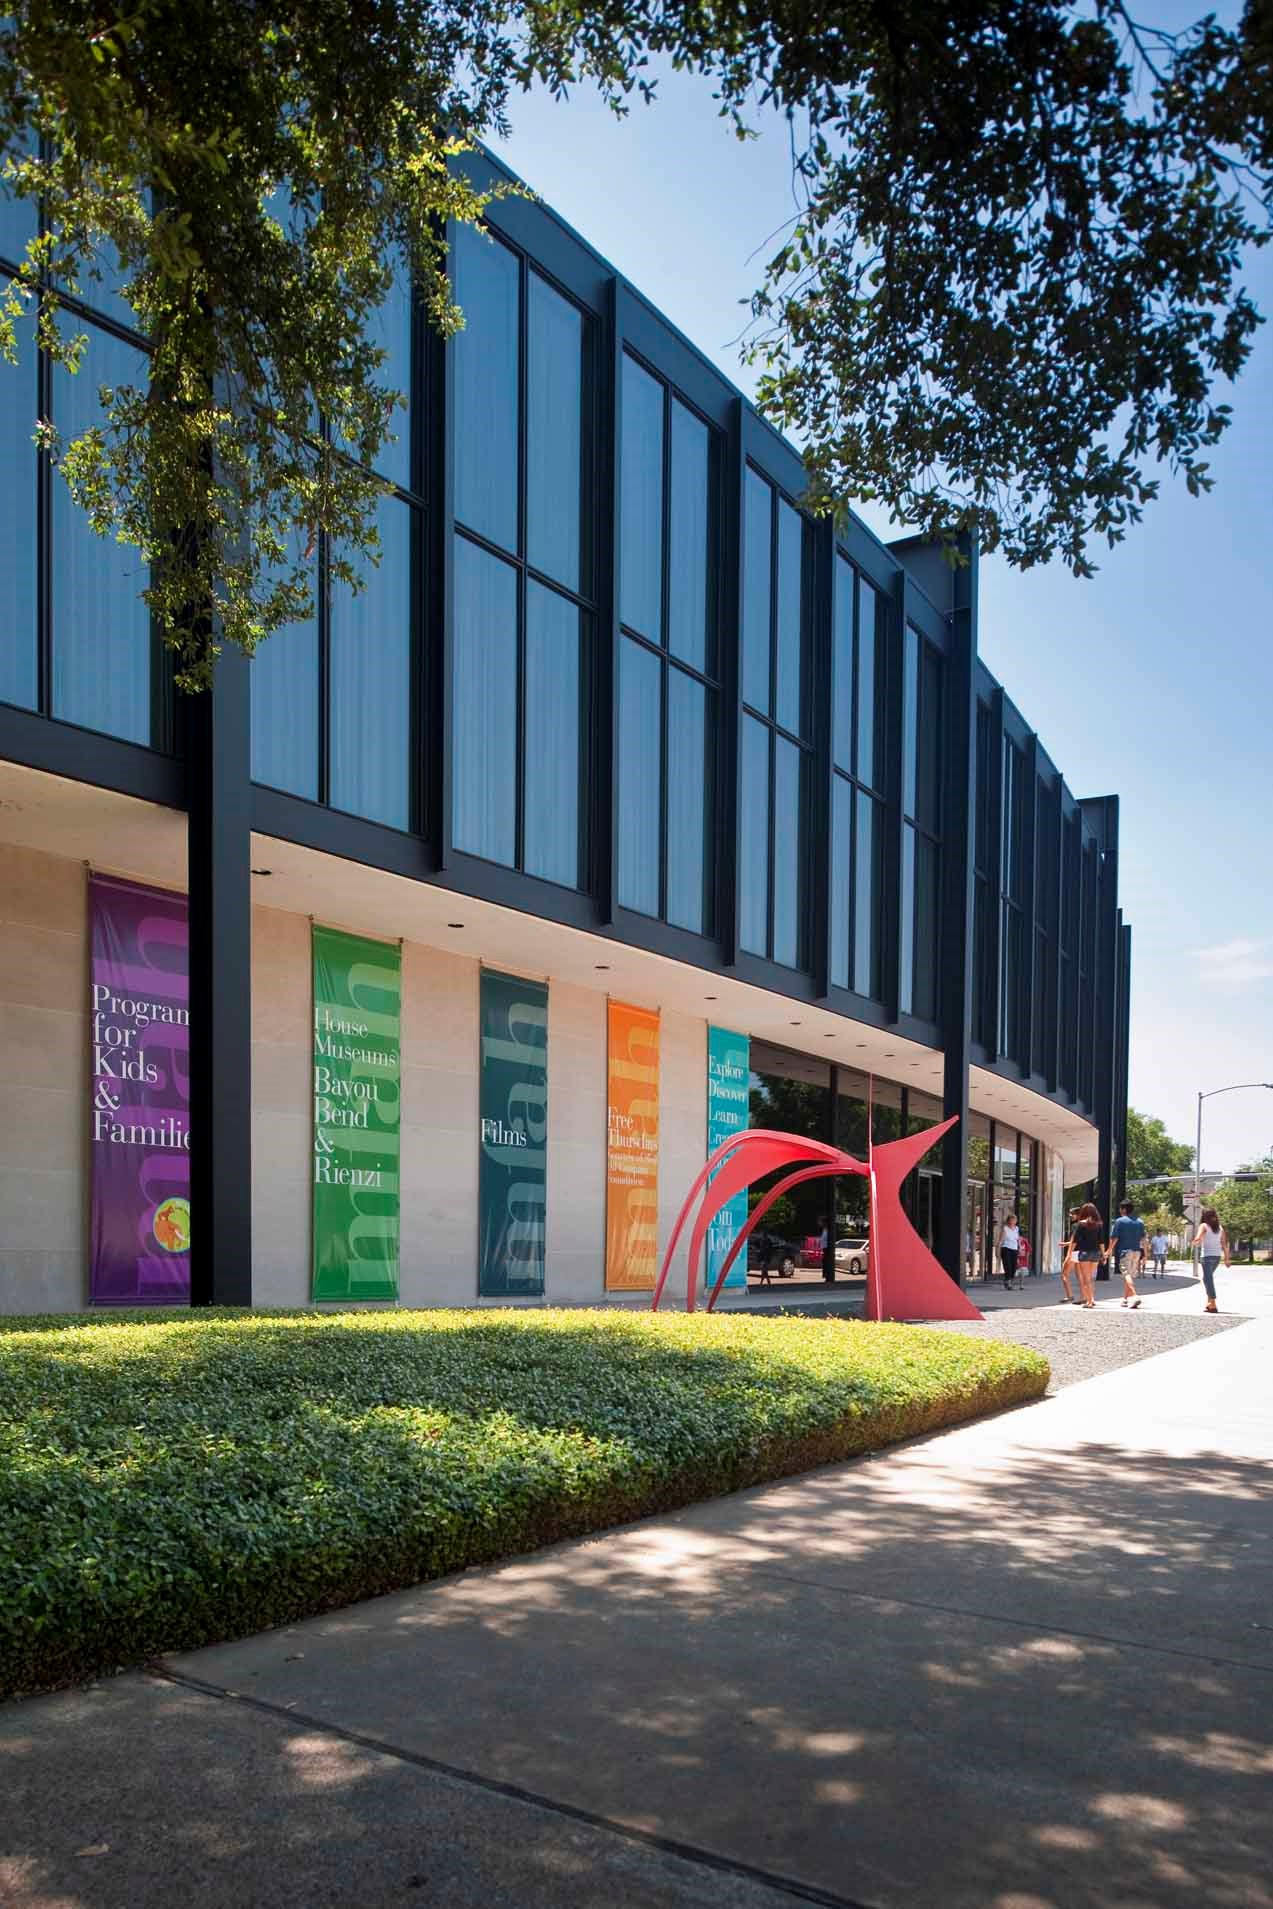 Visiting The MFAH For FREE The Museum Of Fine Arts Houston - Museums on us bank of america list